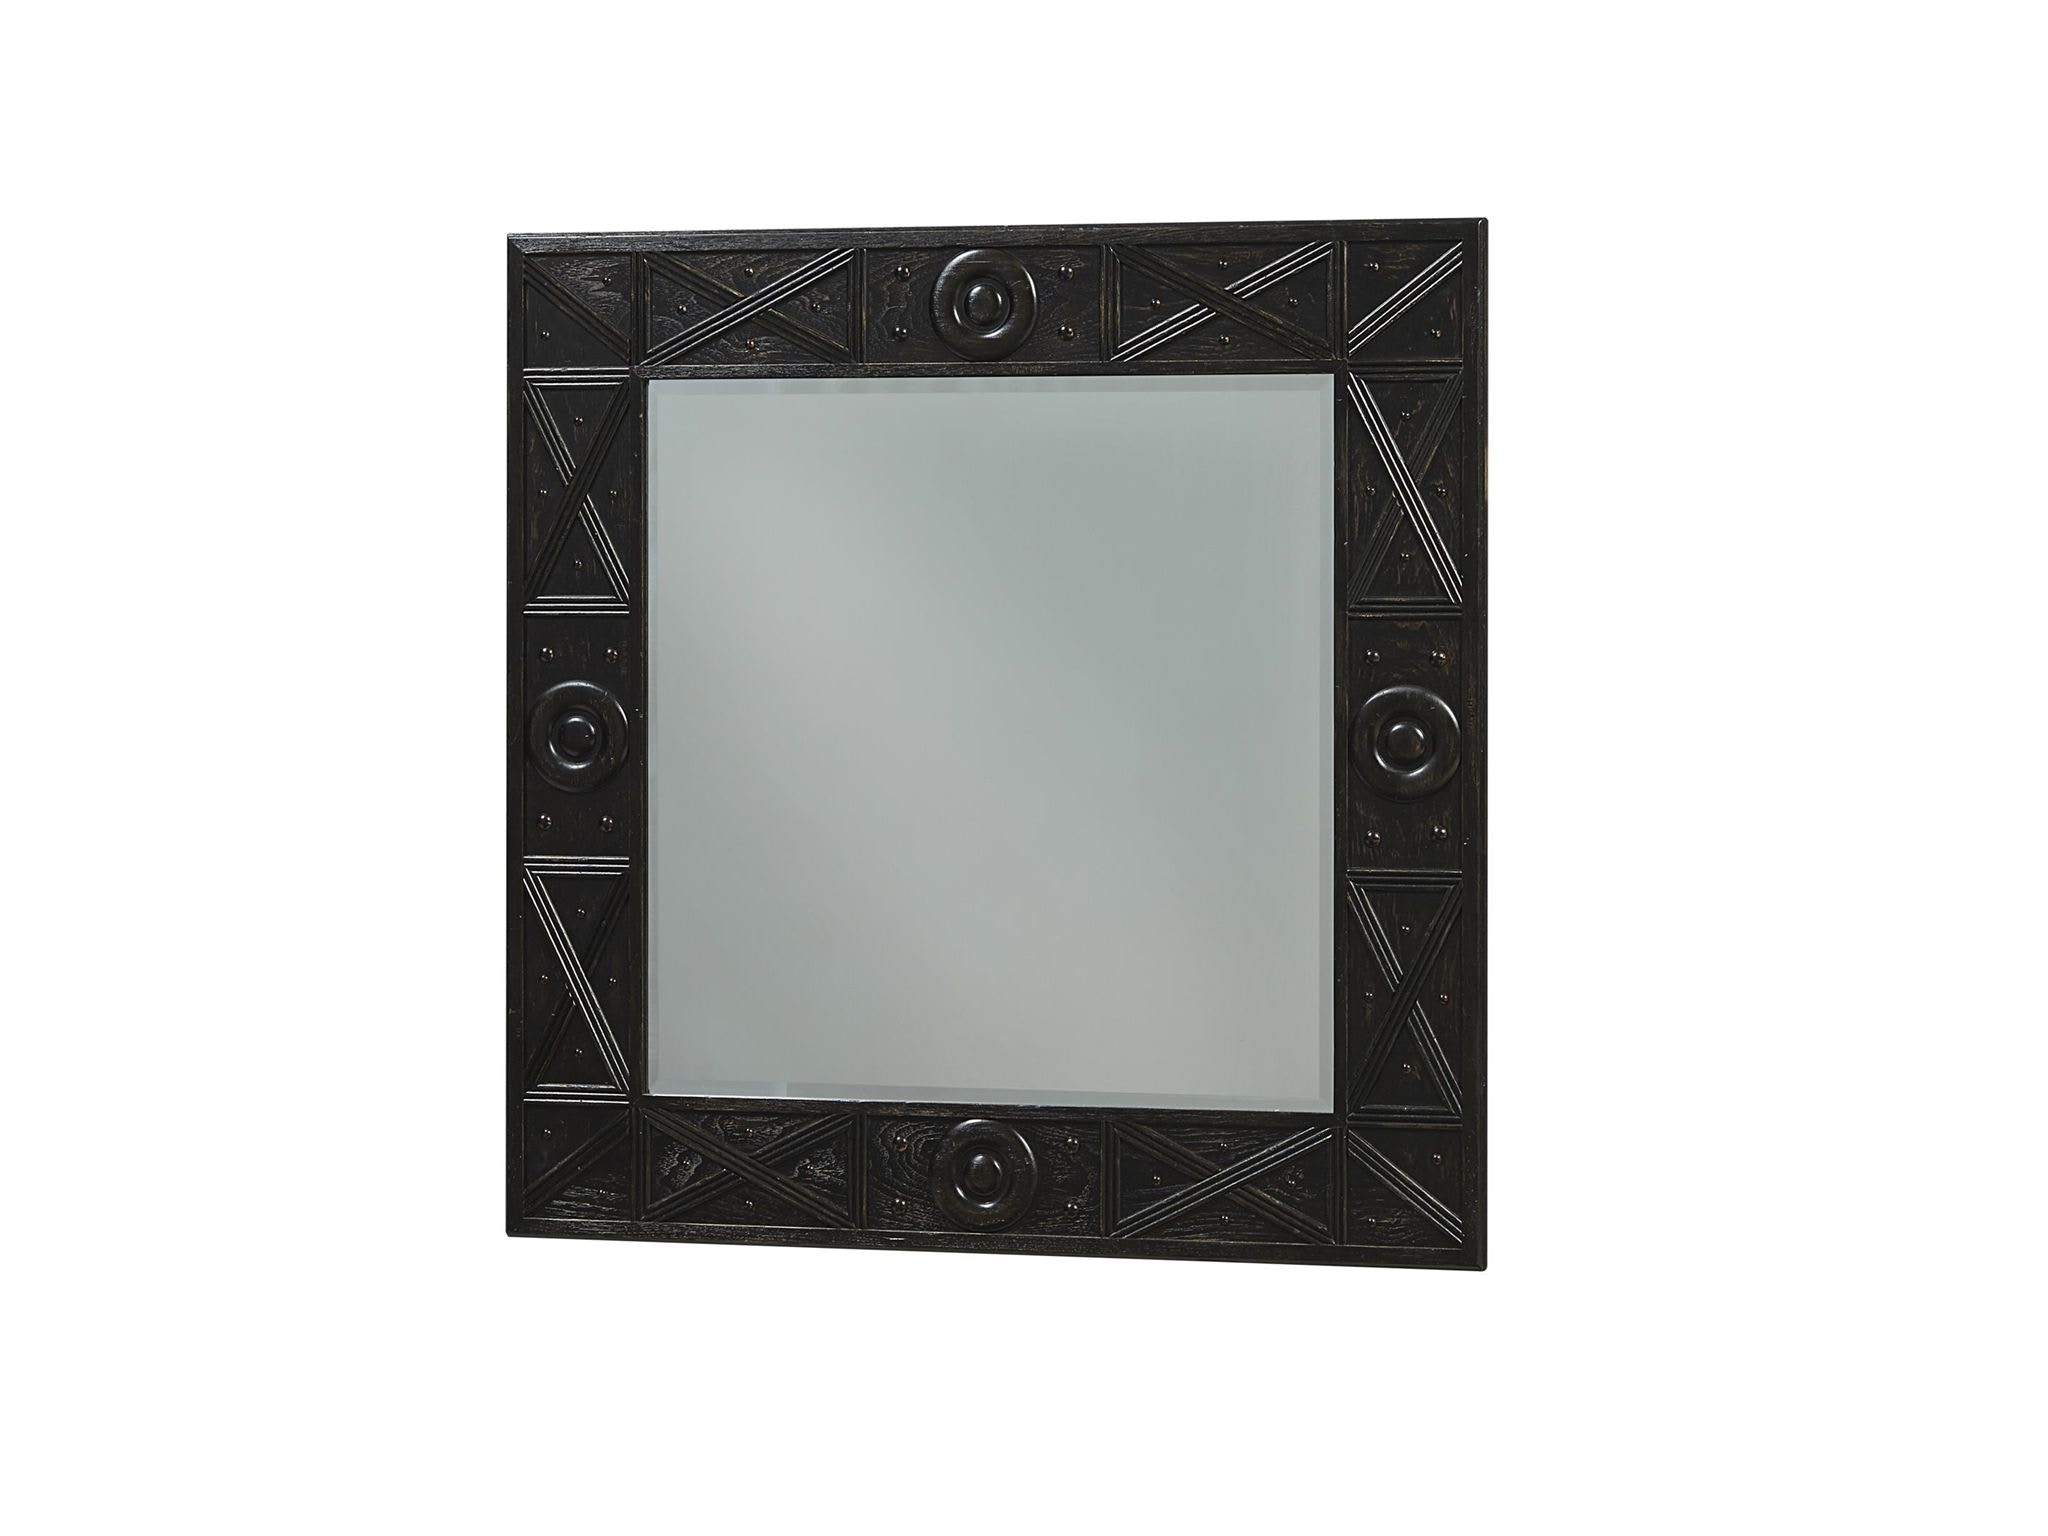 Fine Furniture Design Accessories Looking At You Mirror 1421 150 | Hickory  Furniture Mart | Hickory, NC